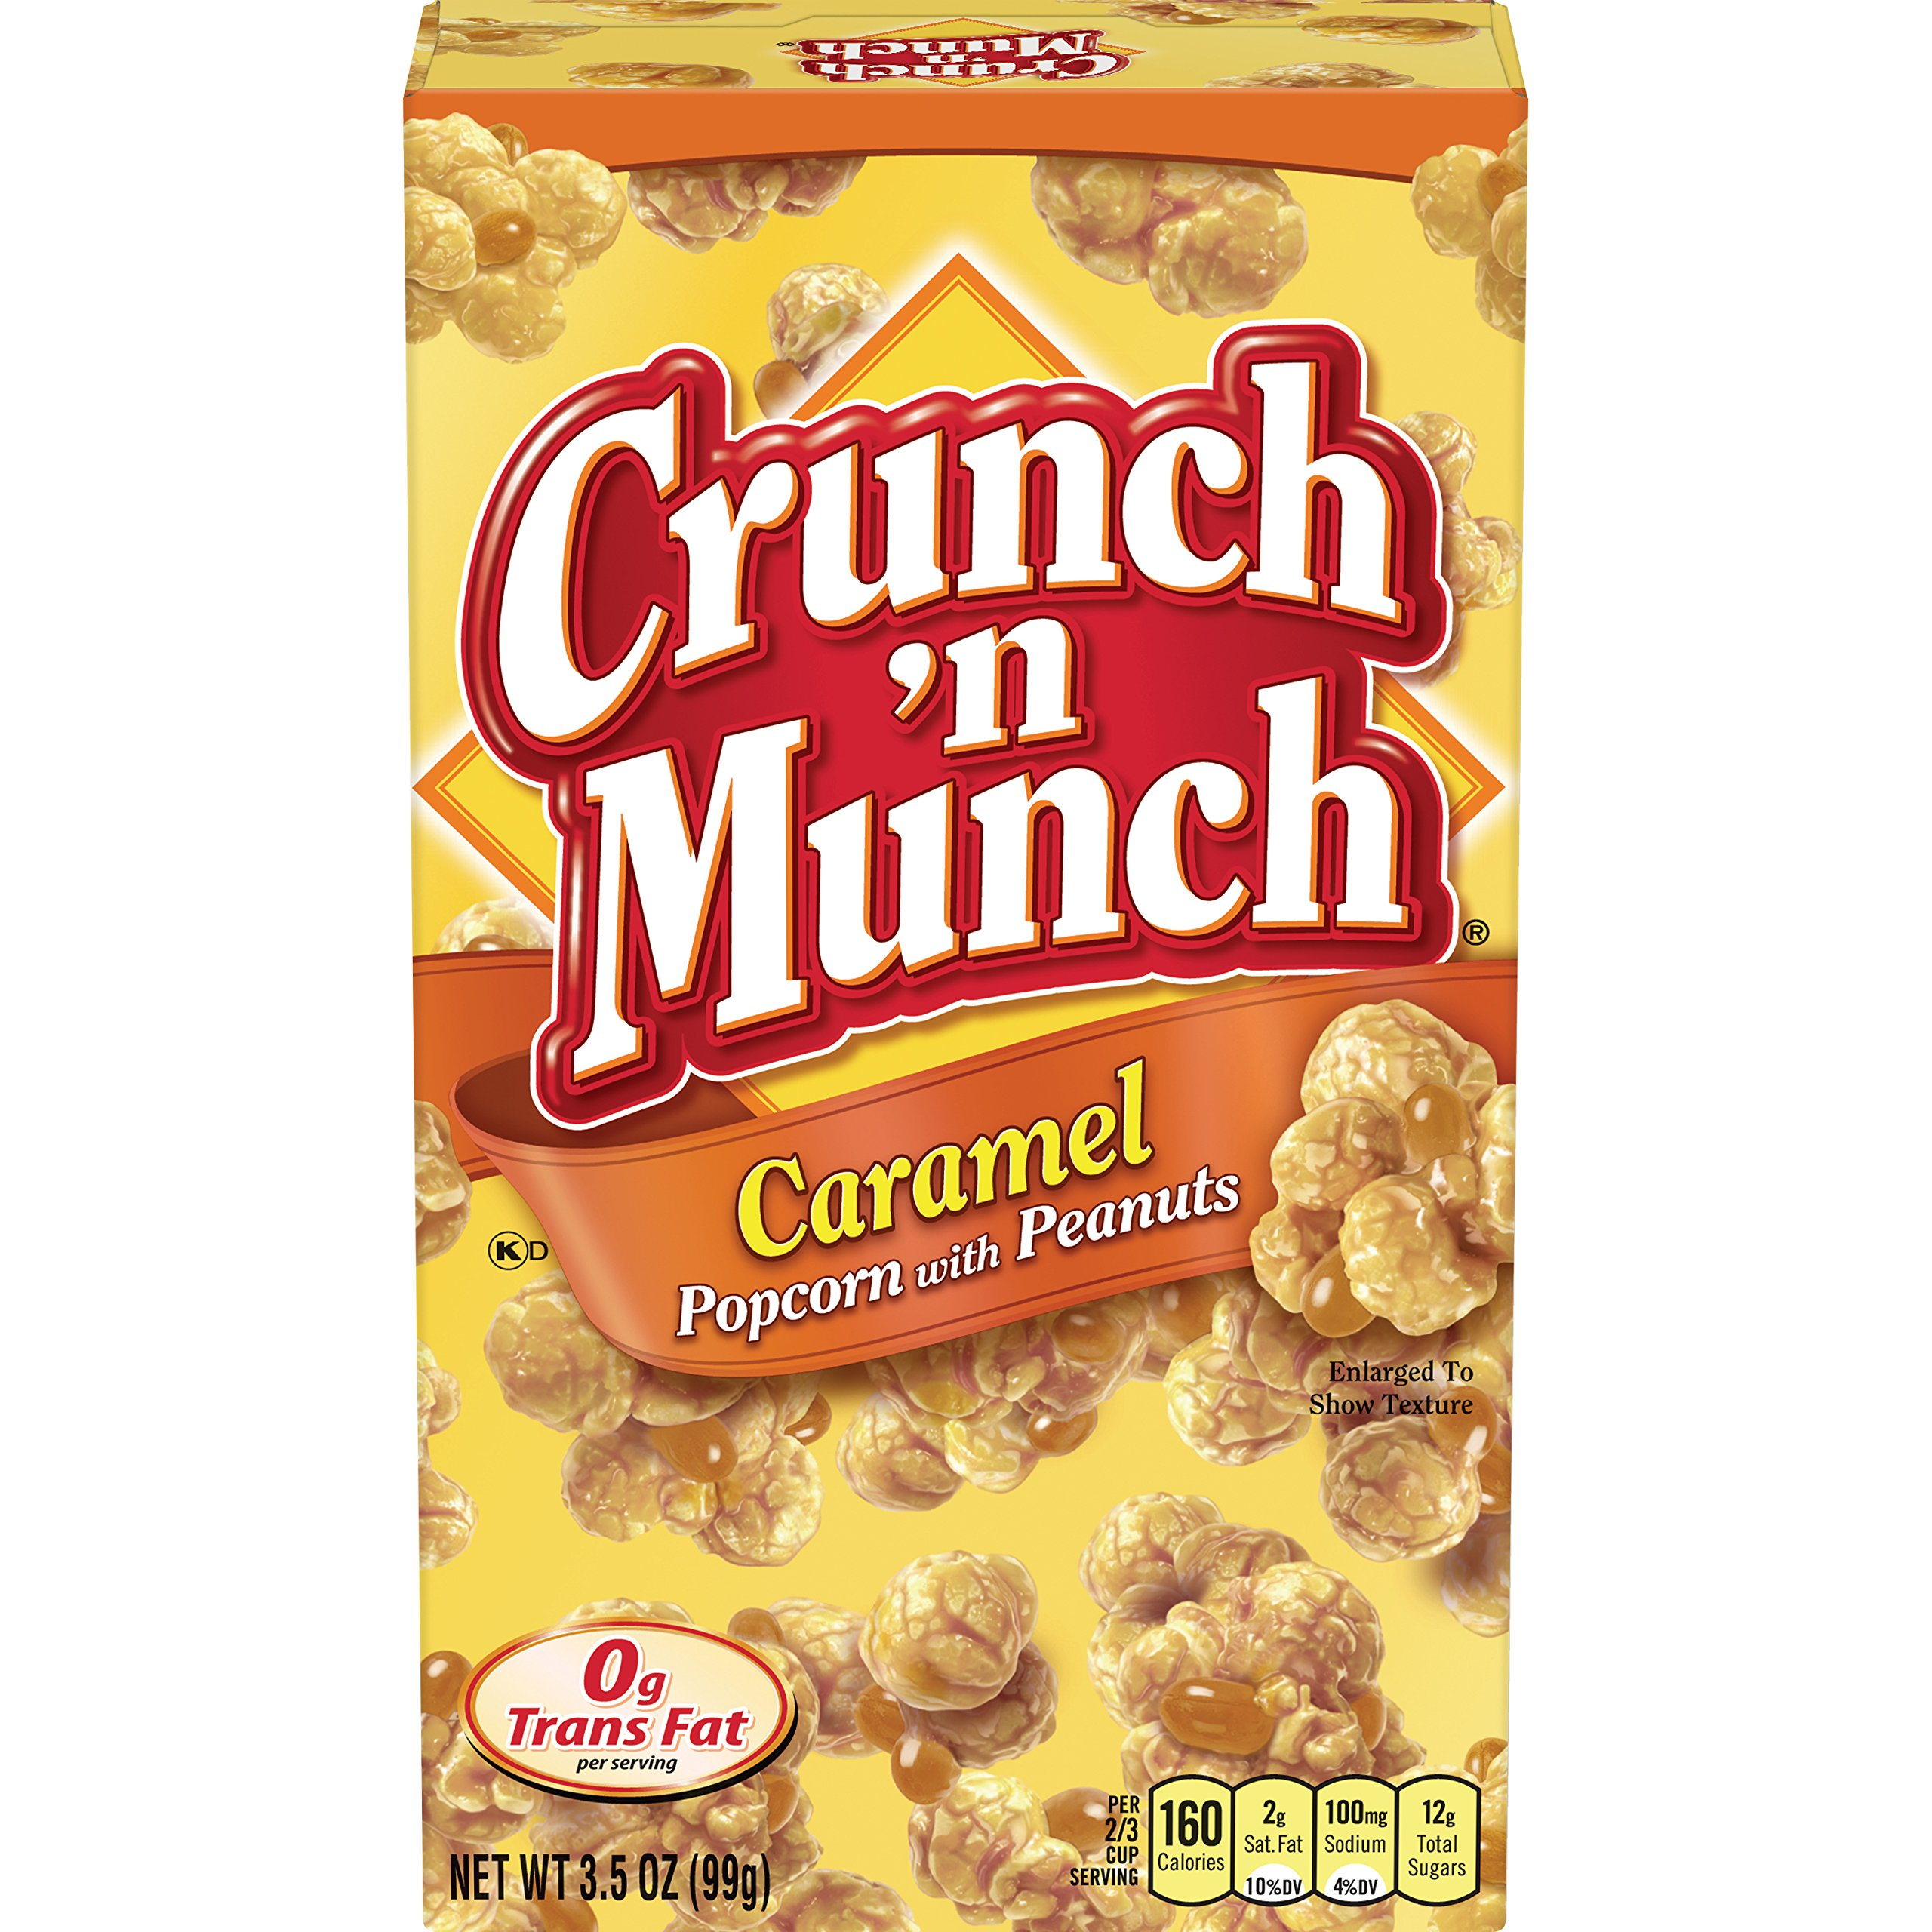 Crunch N Munch Caramel Popcorn with Peanuts, 3.5 Ounce (Pack of 12)